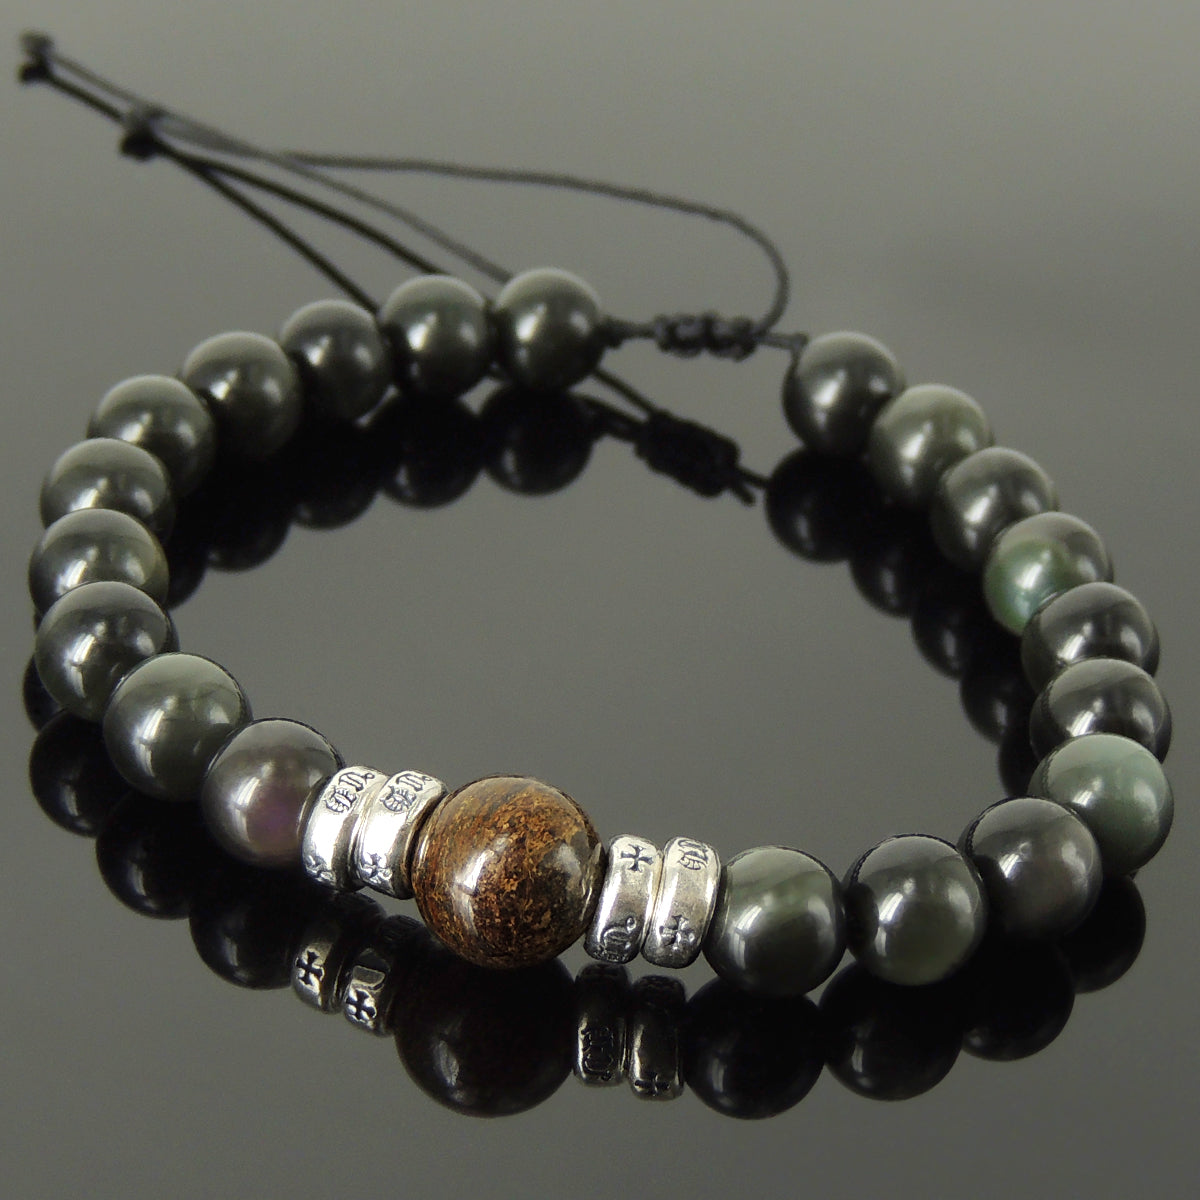 Vintage Celtic Handmade Braided Gemstone Bracelet - Men & Women Healing Casual Wear with Bronzite, Rainbow Black Obsidian, Adjustable Drawstring, S925 Sterling Silver Spacer Beads BR1692